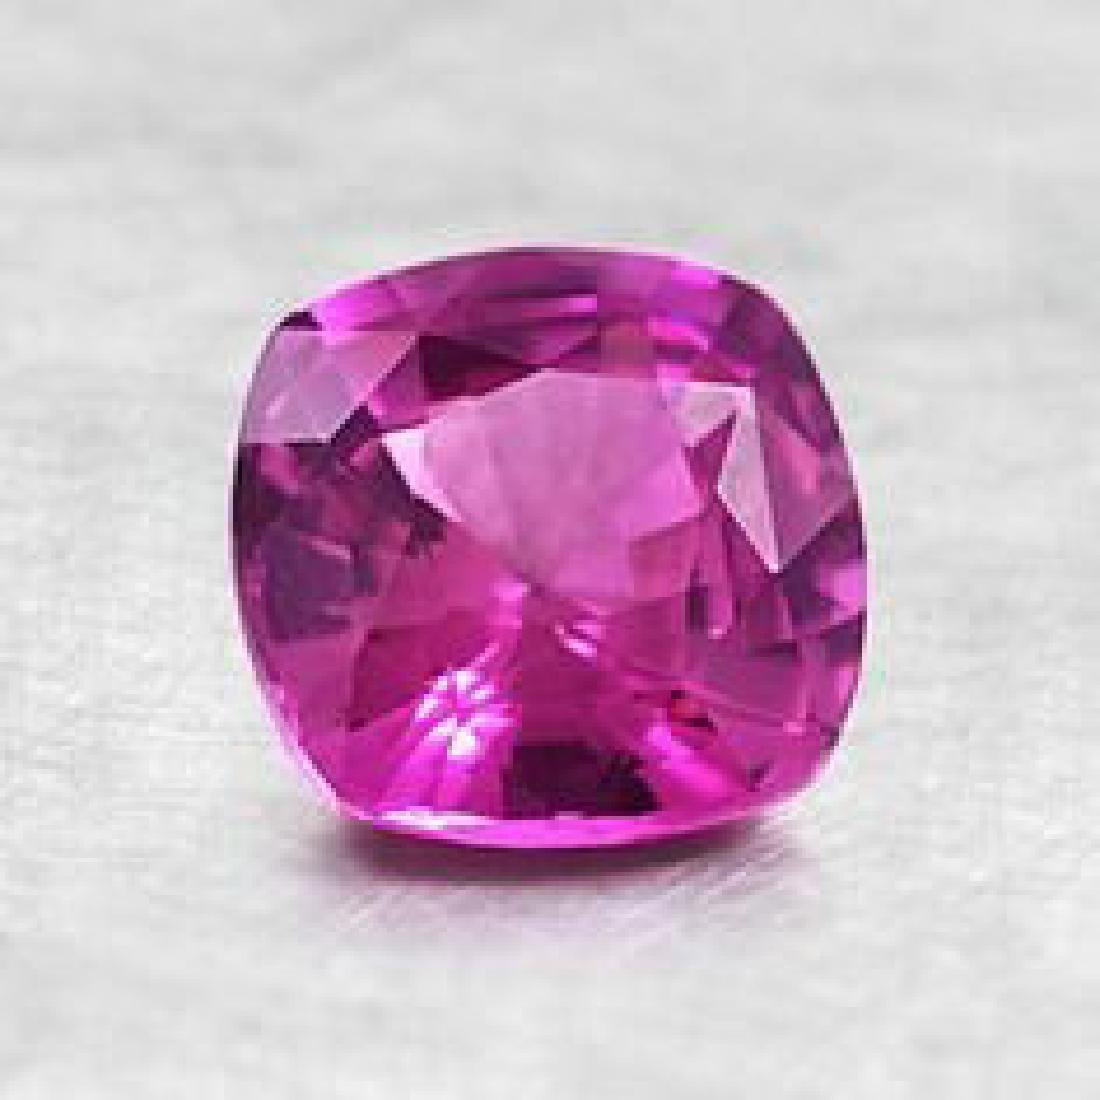 Natural Intense Pink Ruby 2.28 Cts -